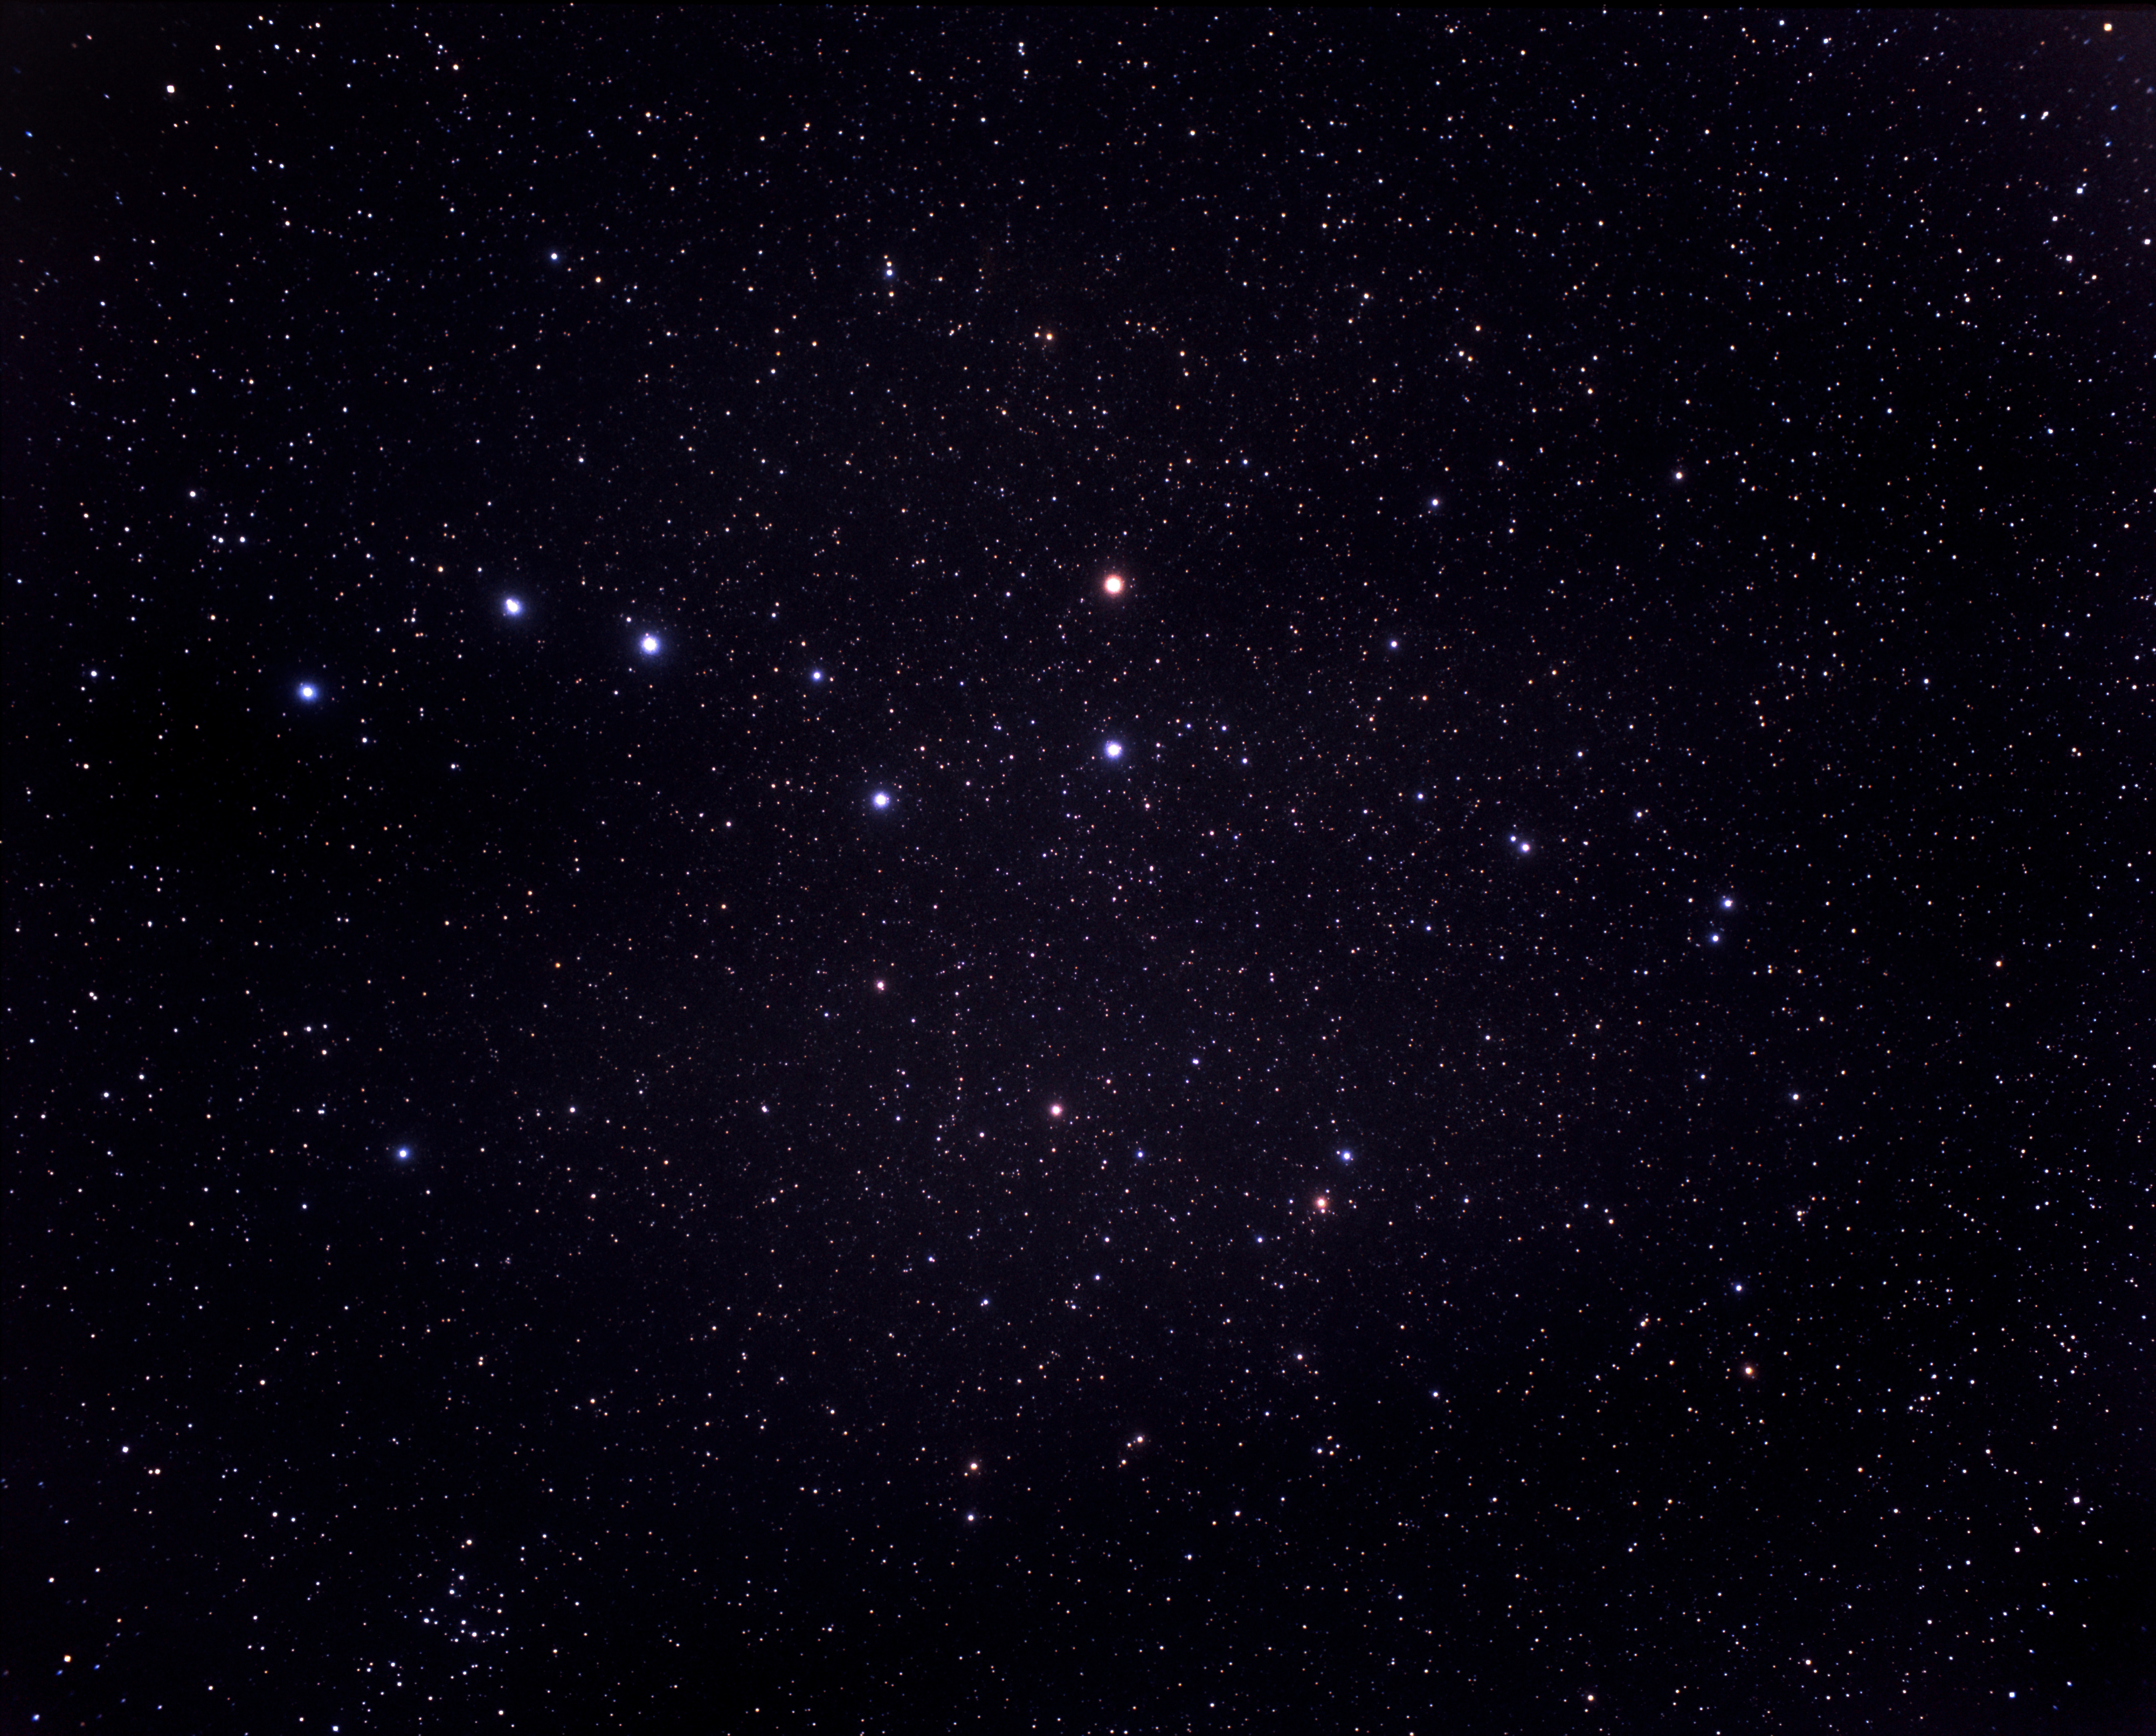 Live Winter Snow Fall Background Wallpaper A Very Wide Field View Of The Constellations Of Ursa Major